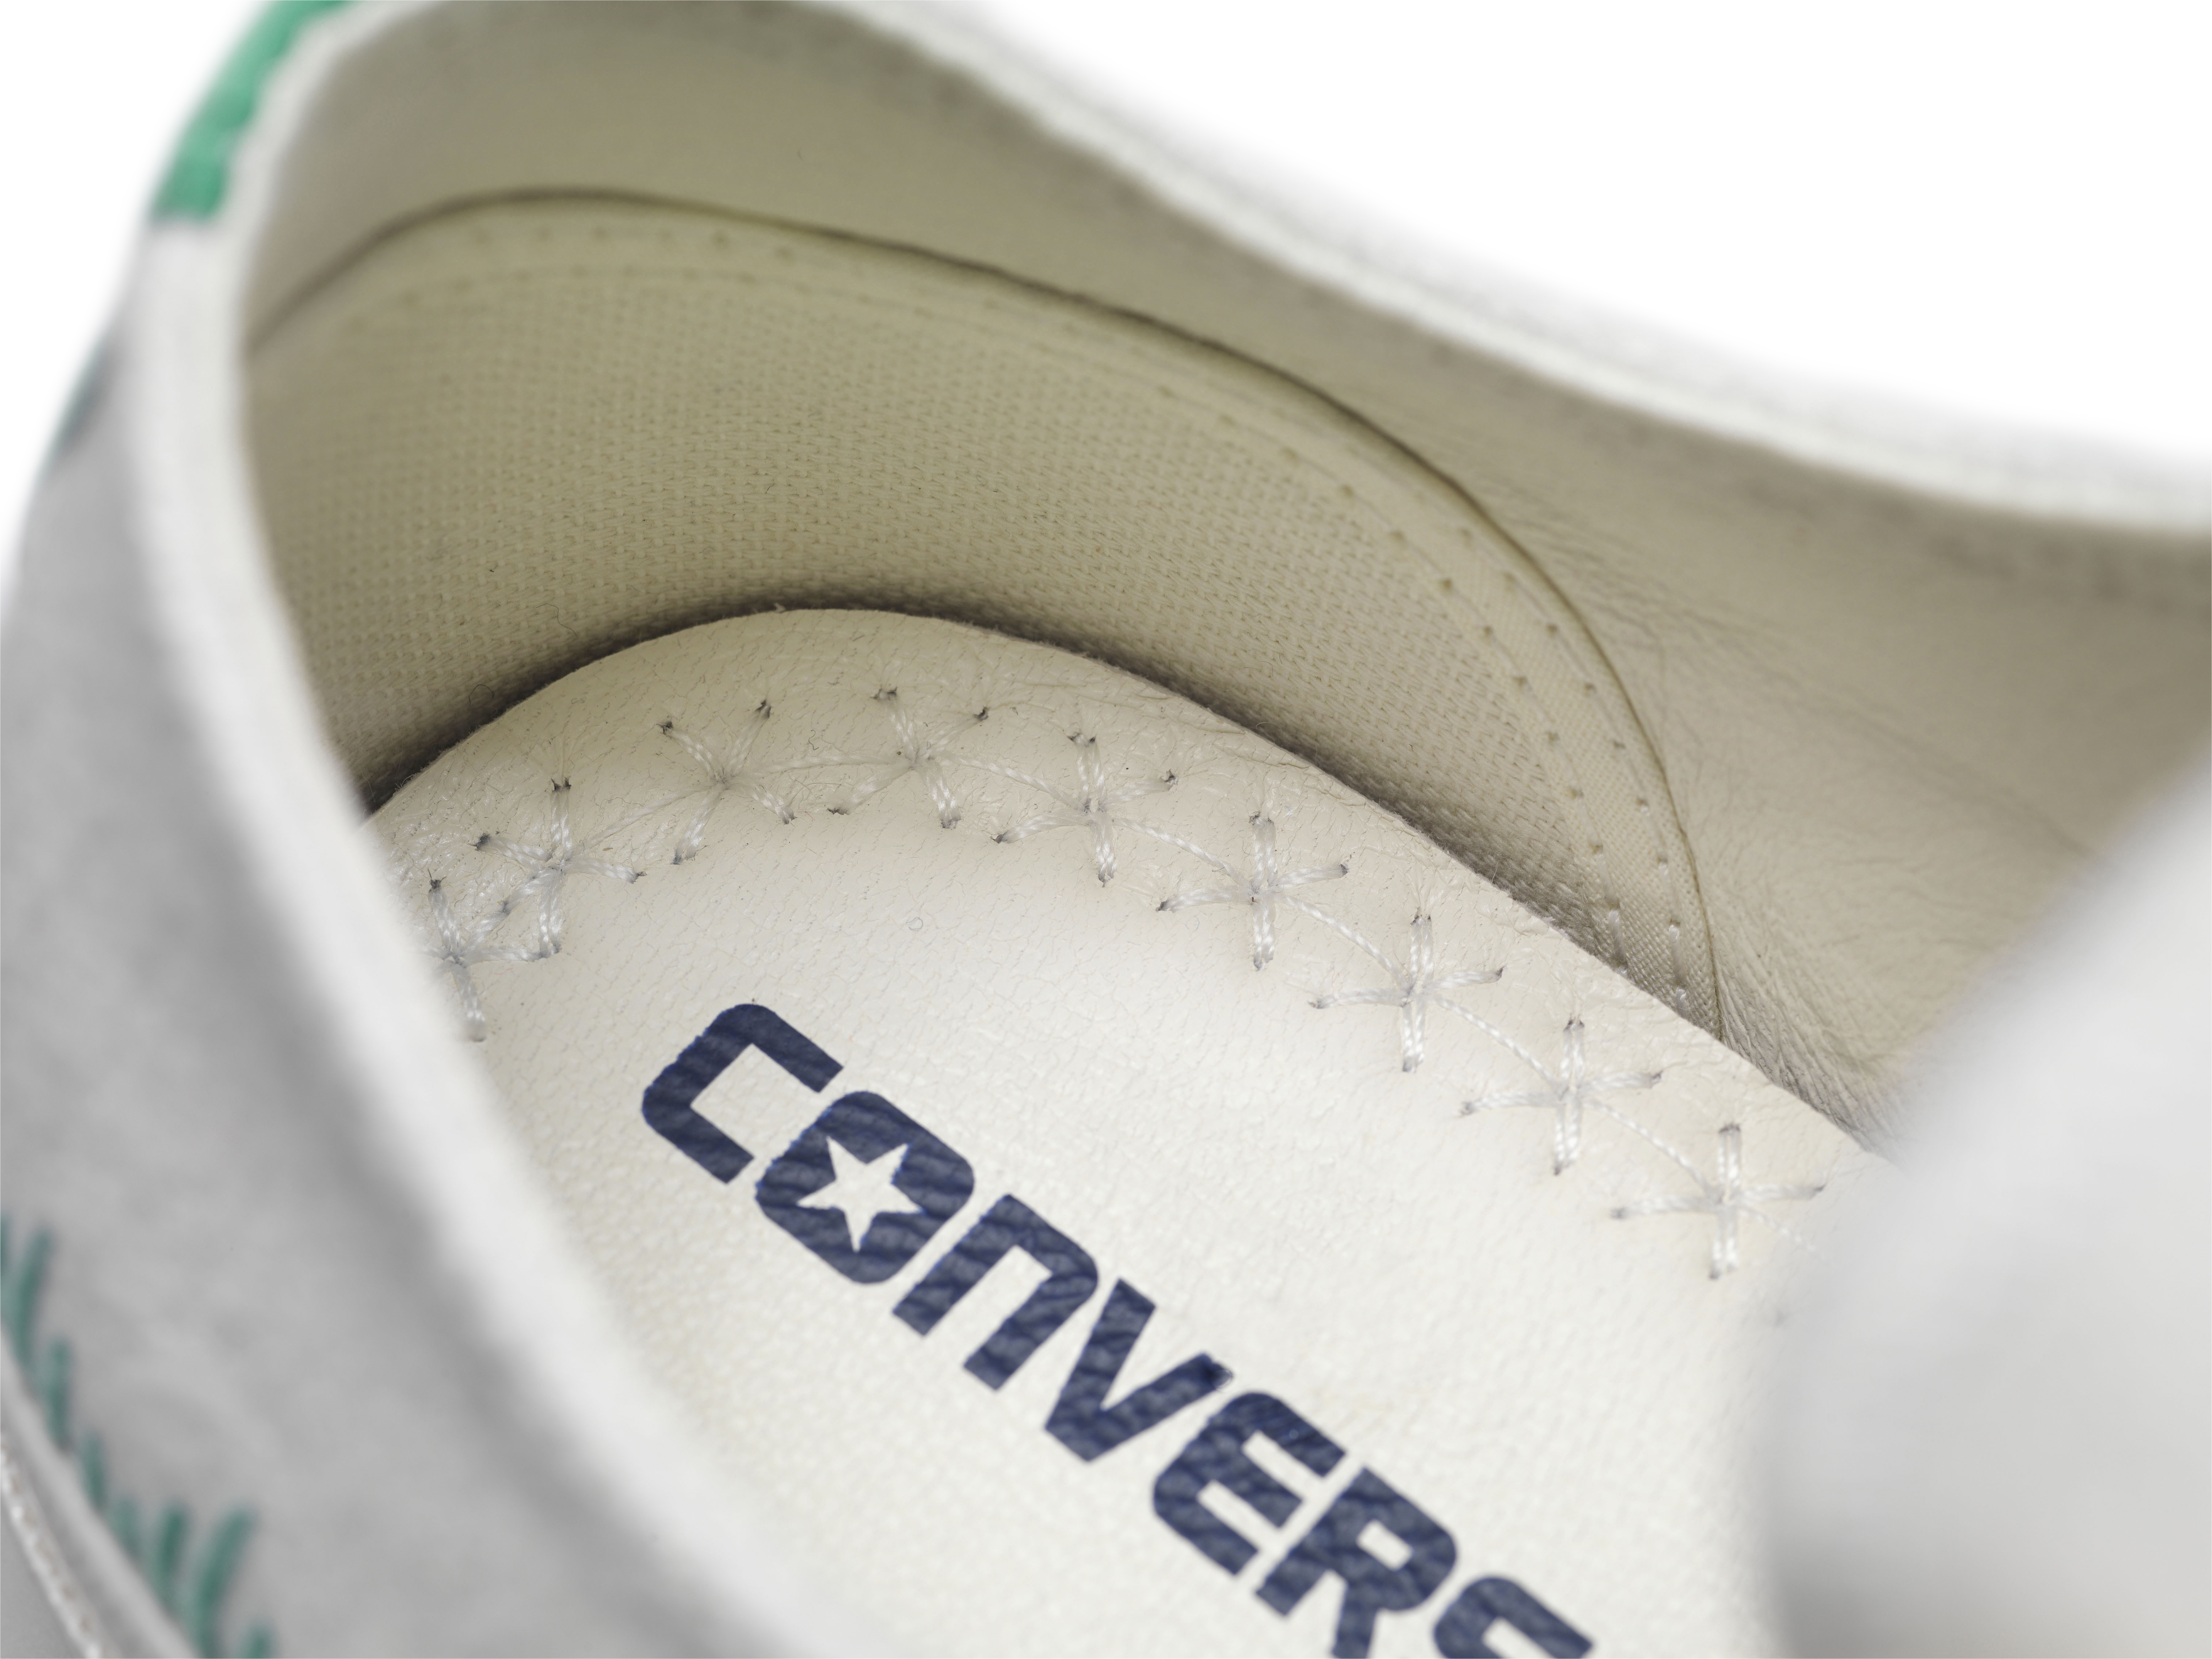 Converse    Union 1970s Chuck Taylor All Star collection  58f57f4a7a68